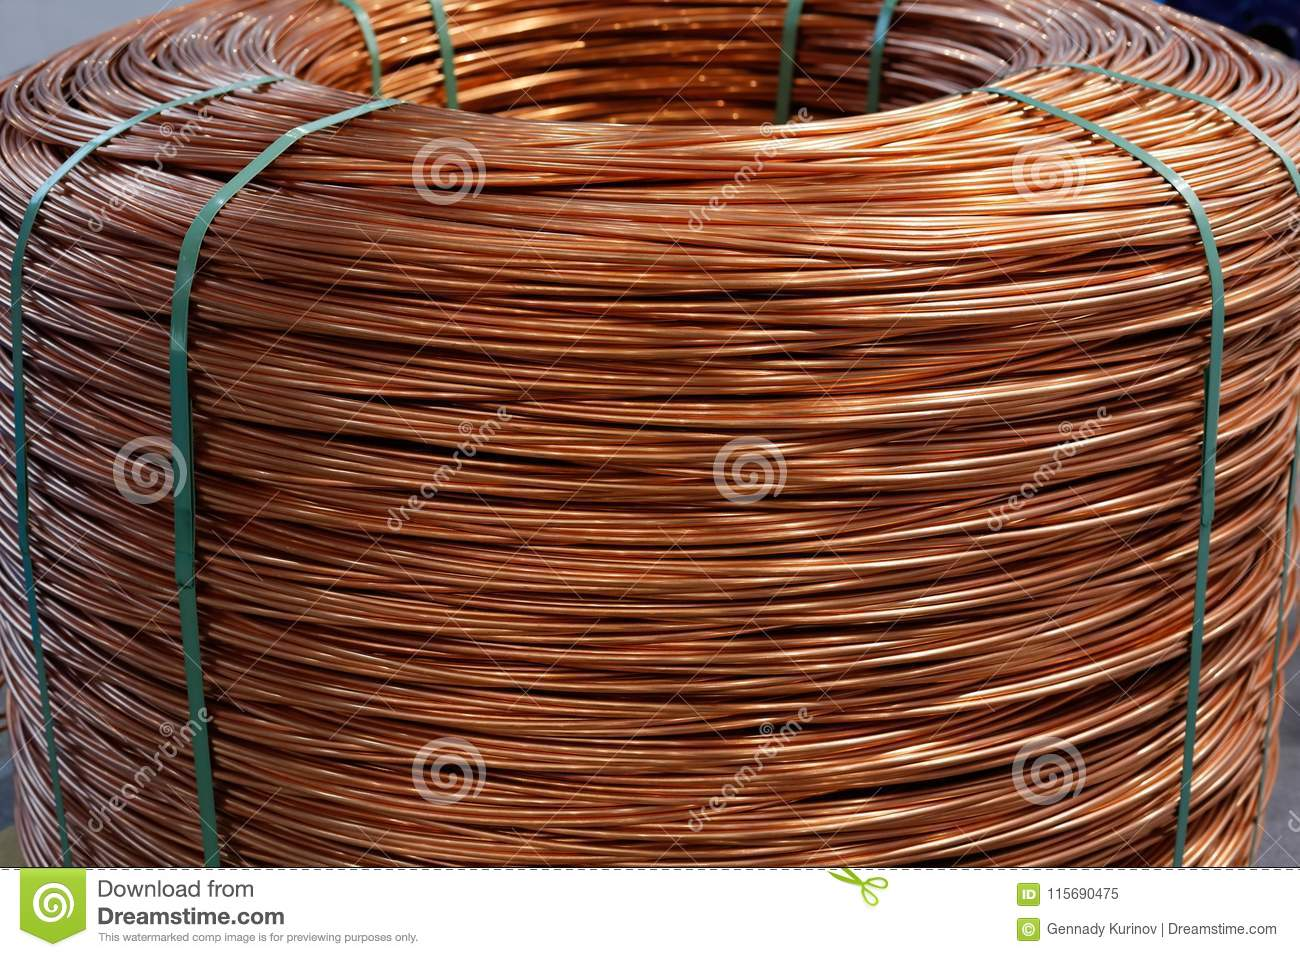 Coil Of 8 Mm Copper Wire Rod Stock Image - Image of closeup ...